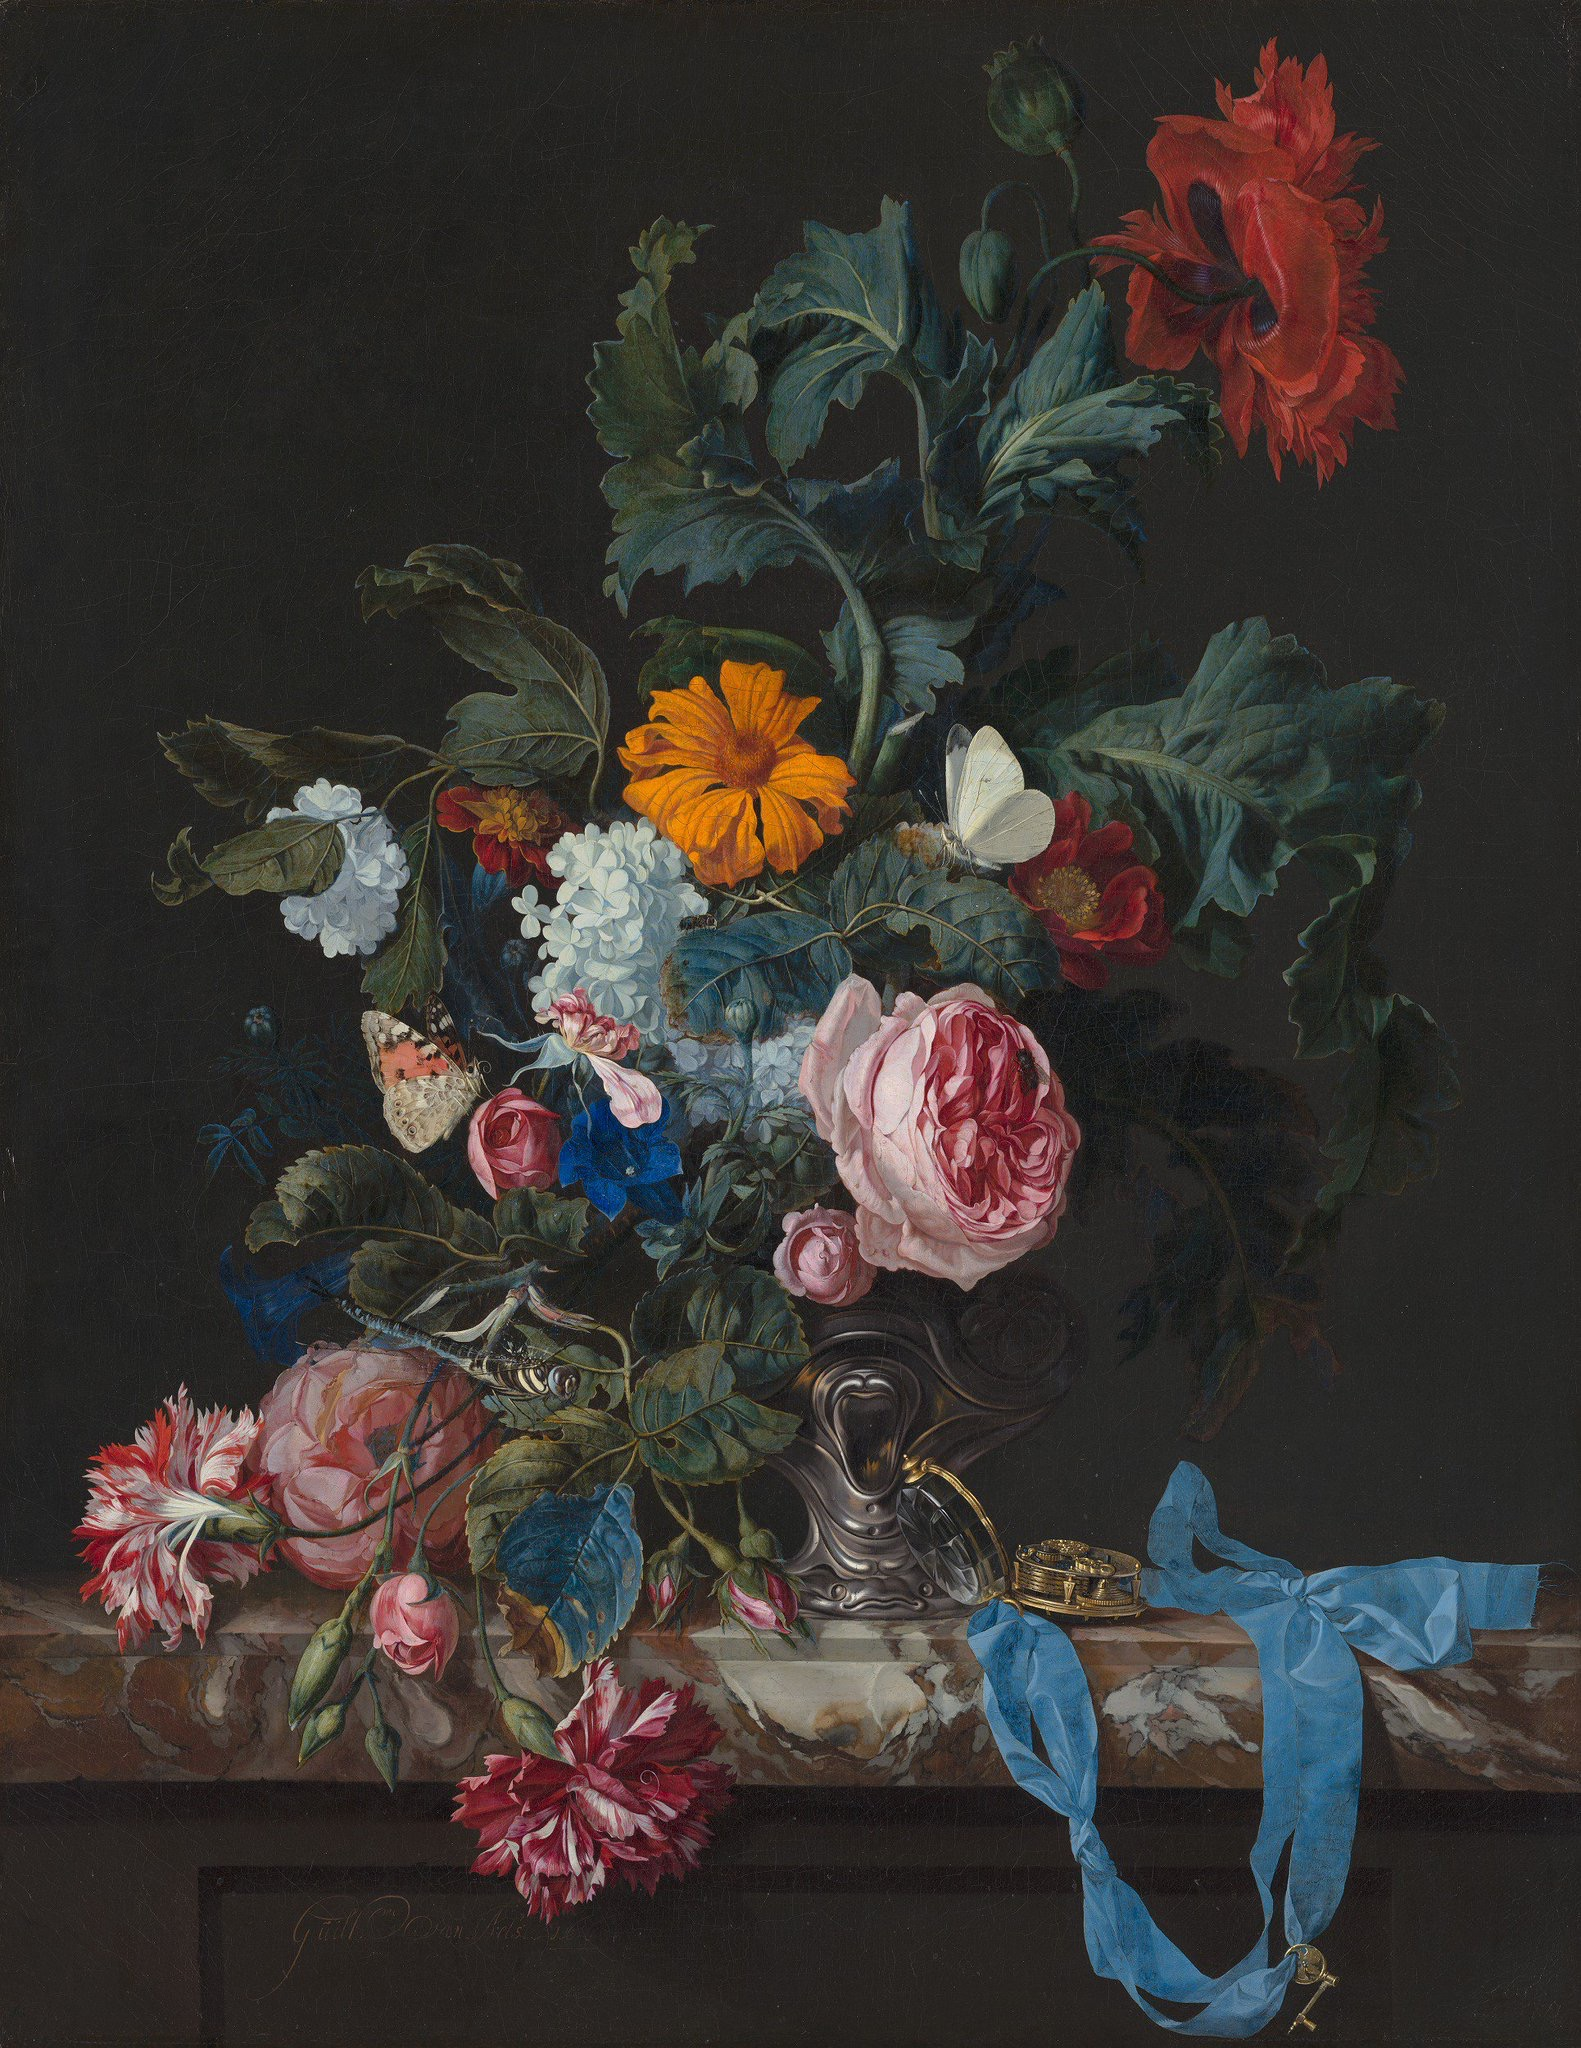 Flower Still Life with a Timepiece, by Willem van Aelst, 1663